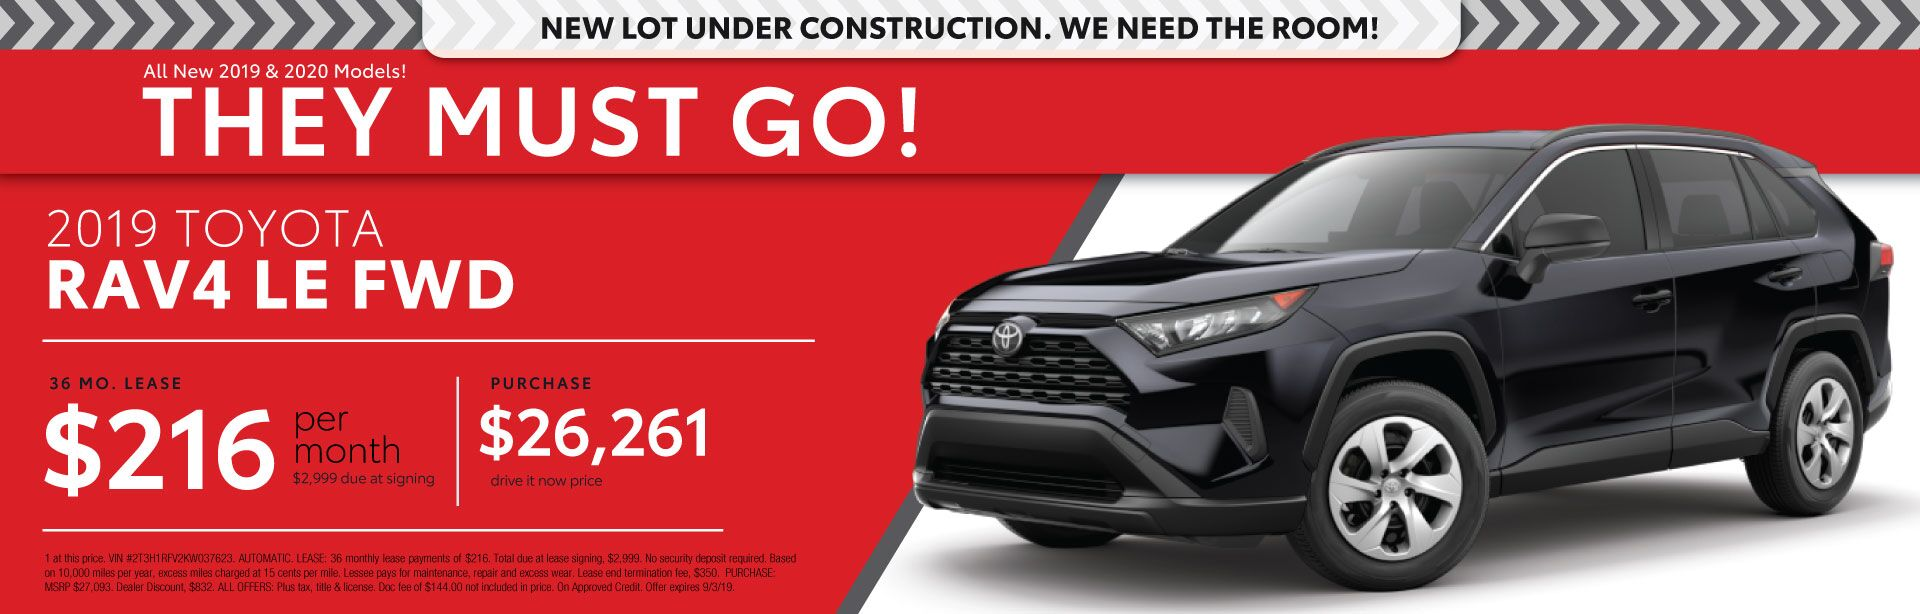 2019 RAV4 LE - Lease for $216 per month for 36 months with $2,999 due at signing - Purchase price $26,261